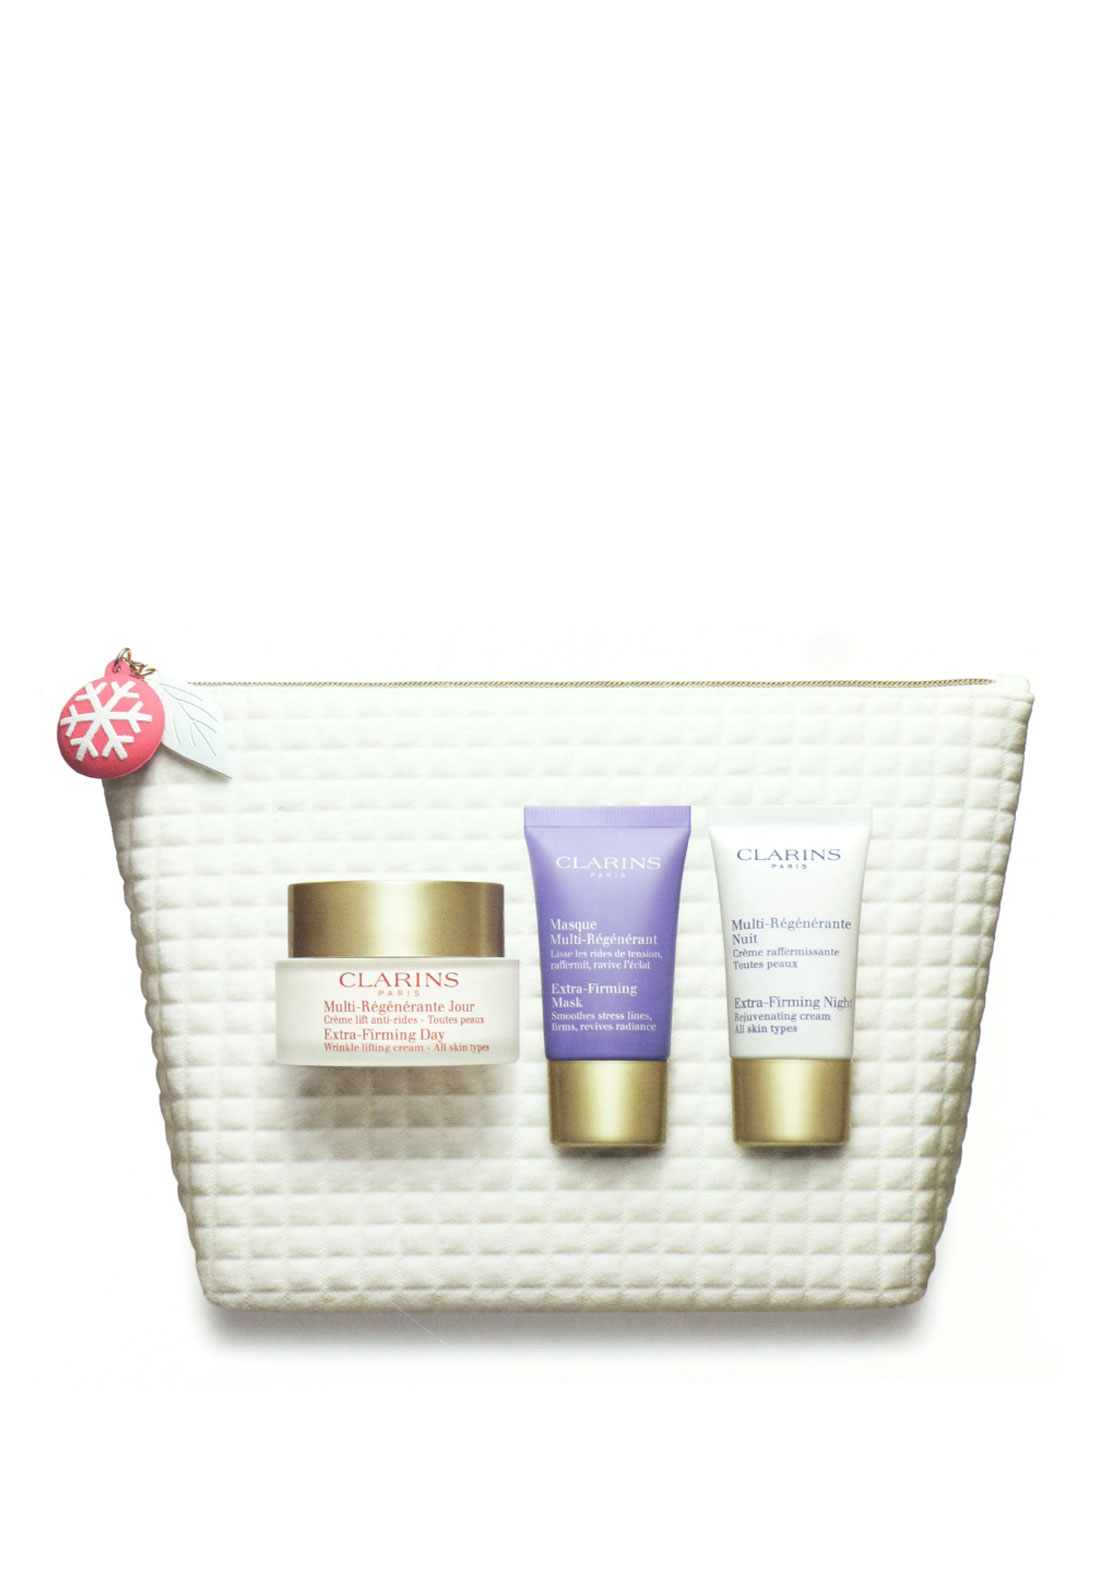 Clarins Christmas 'Lifting and Firming Essentials' Gift Set